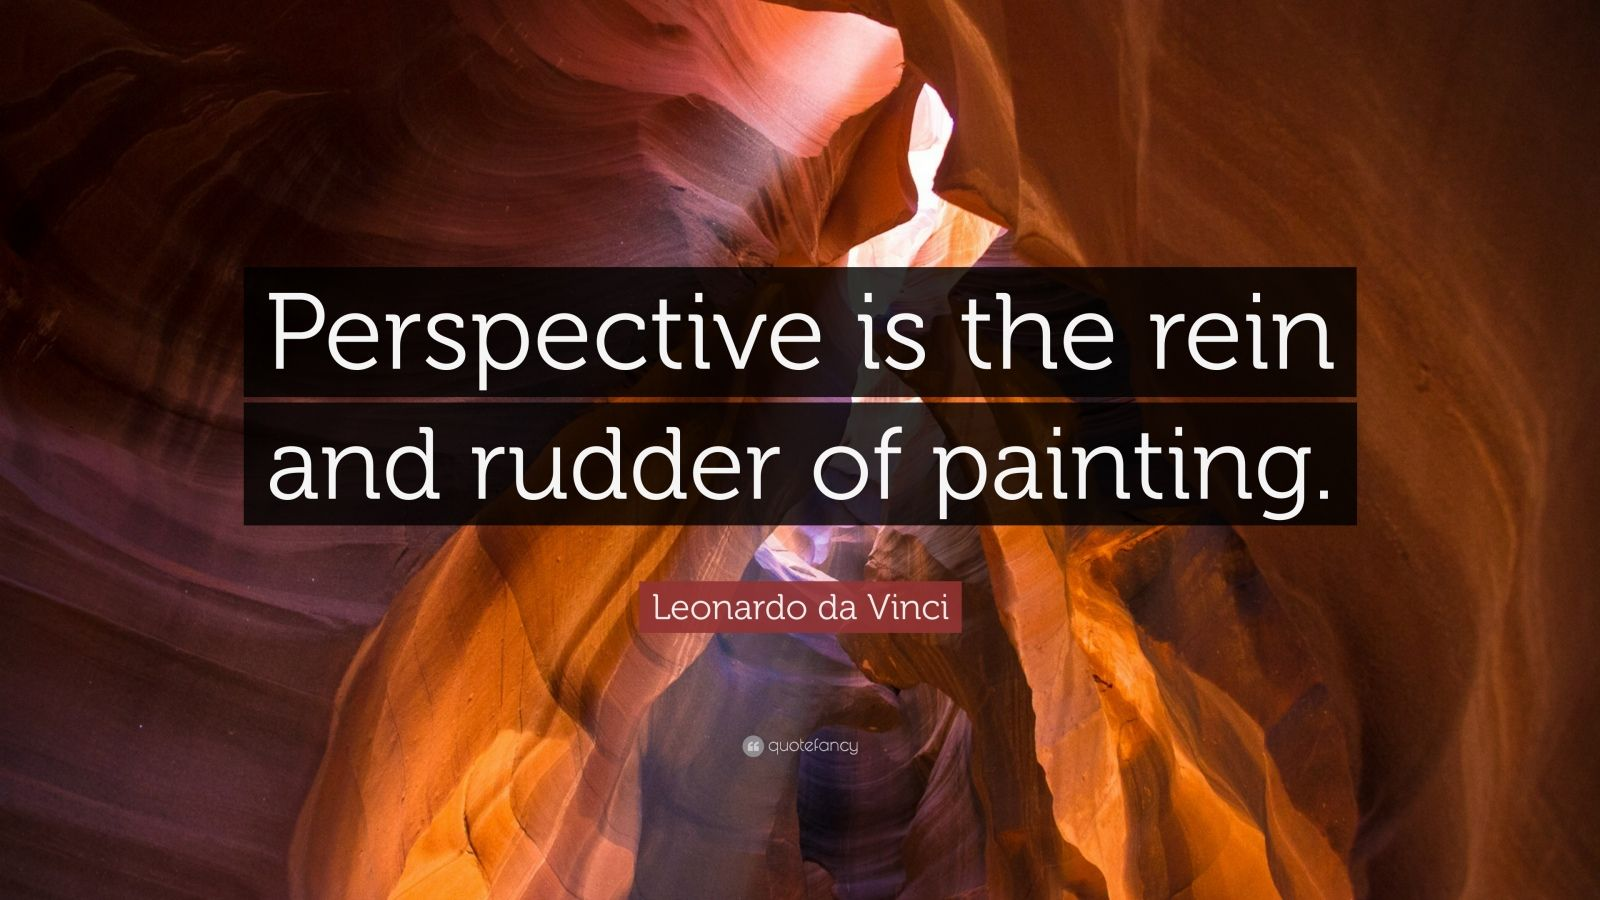 """Leonardo da Vinci Quote: """"Perspective is the rein and rudder of painting."""""""